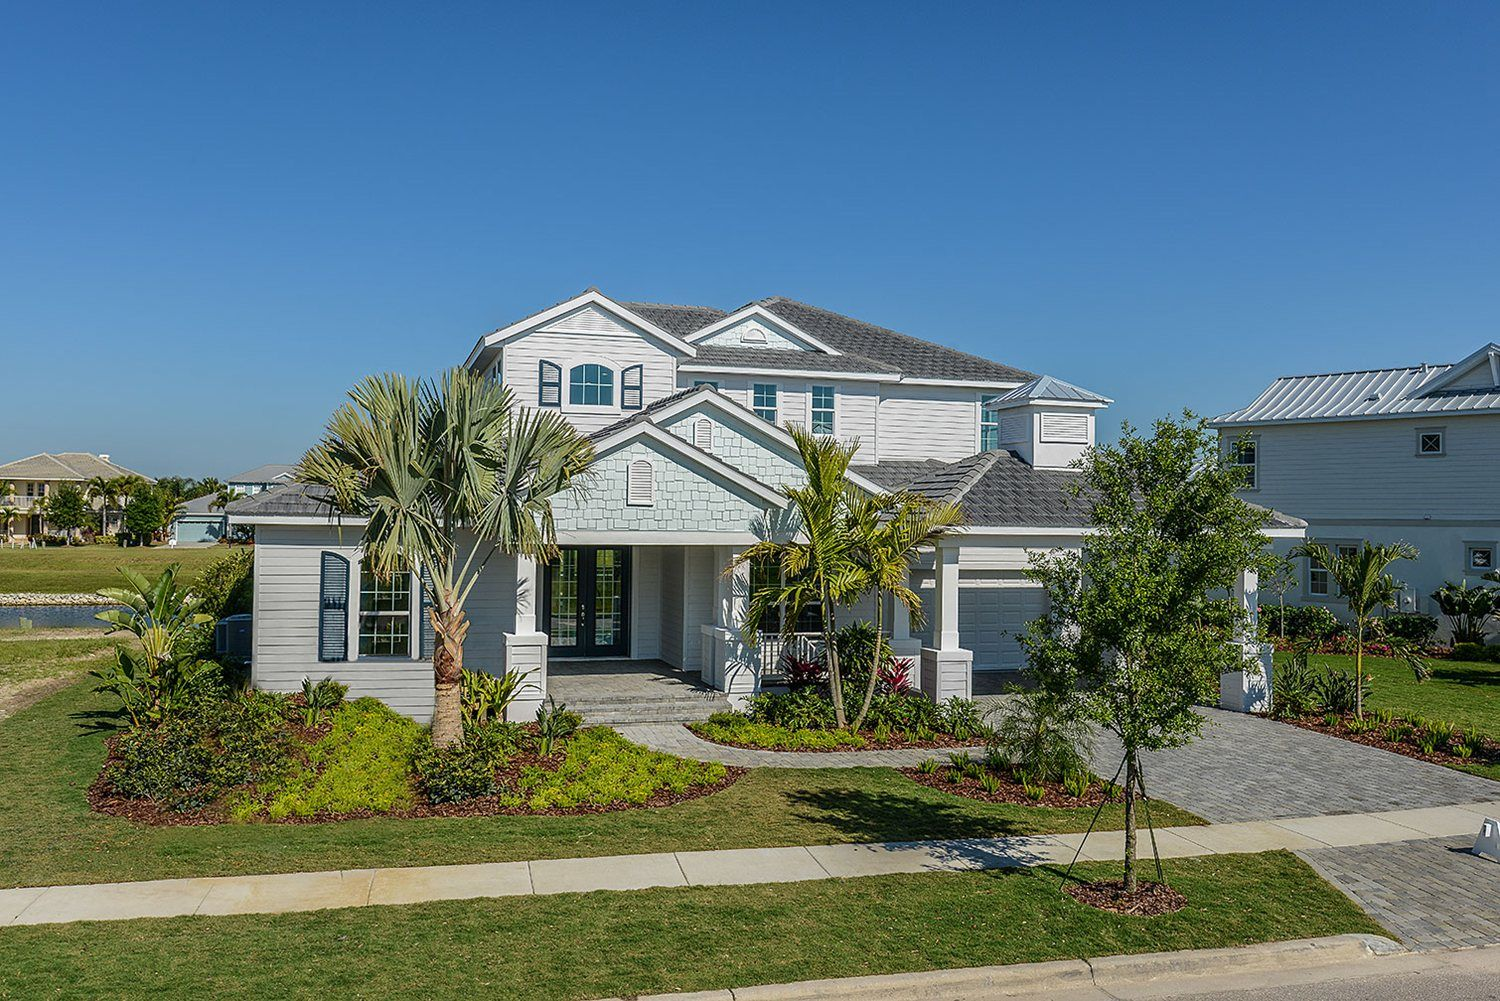 Single Family for Active at Mirabay - Siesta Key Ii 713 Manns Harbor Drive Apollo Beach, Florida 33572 United States